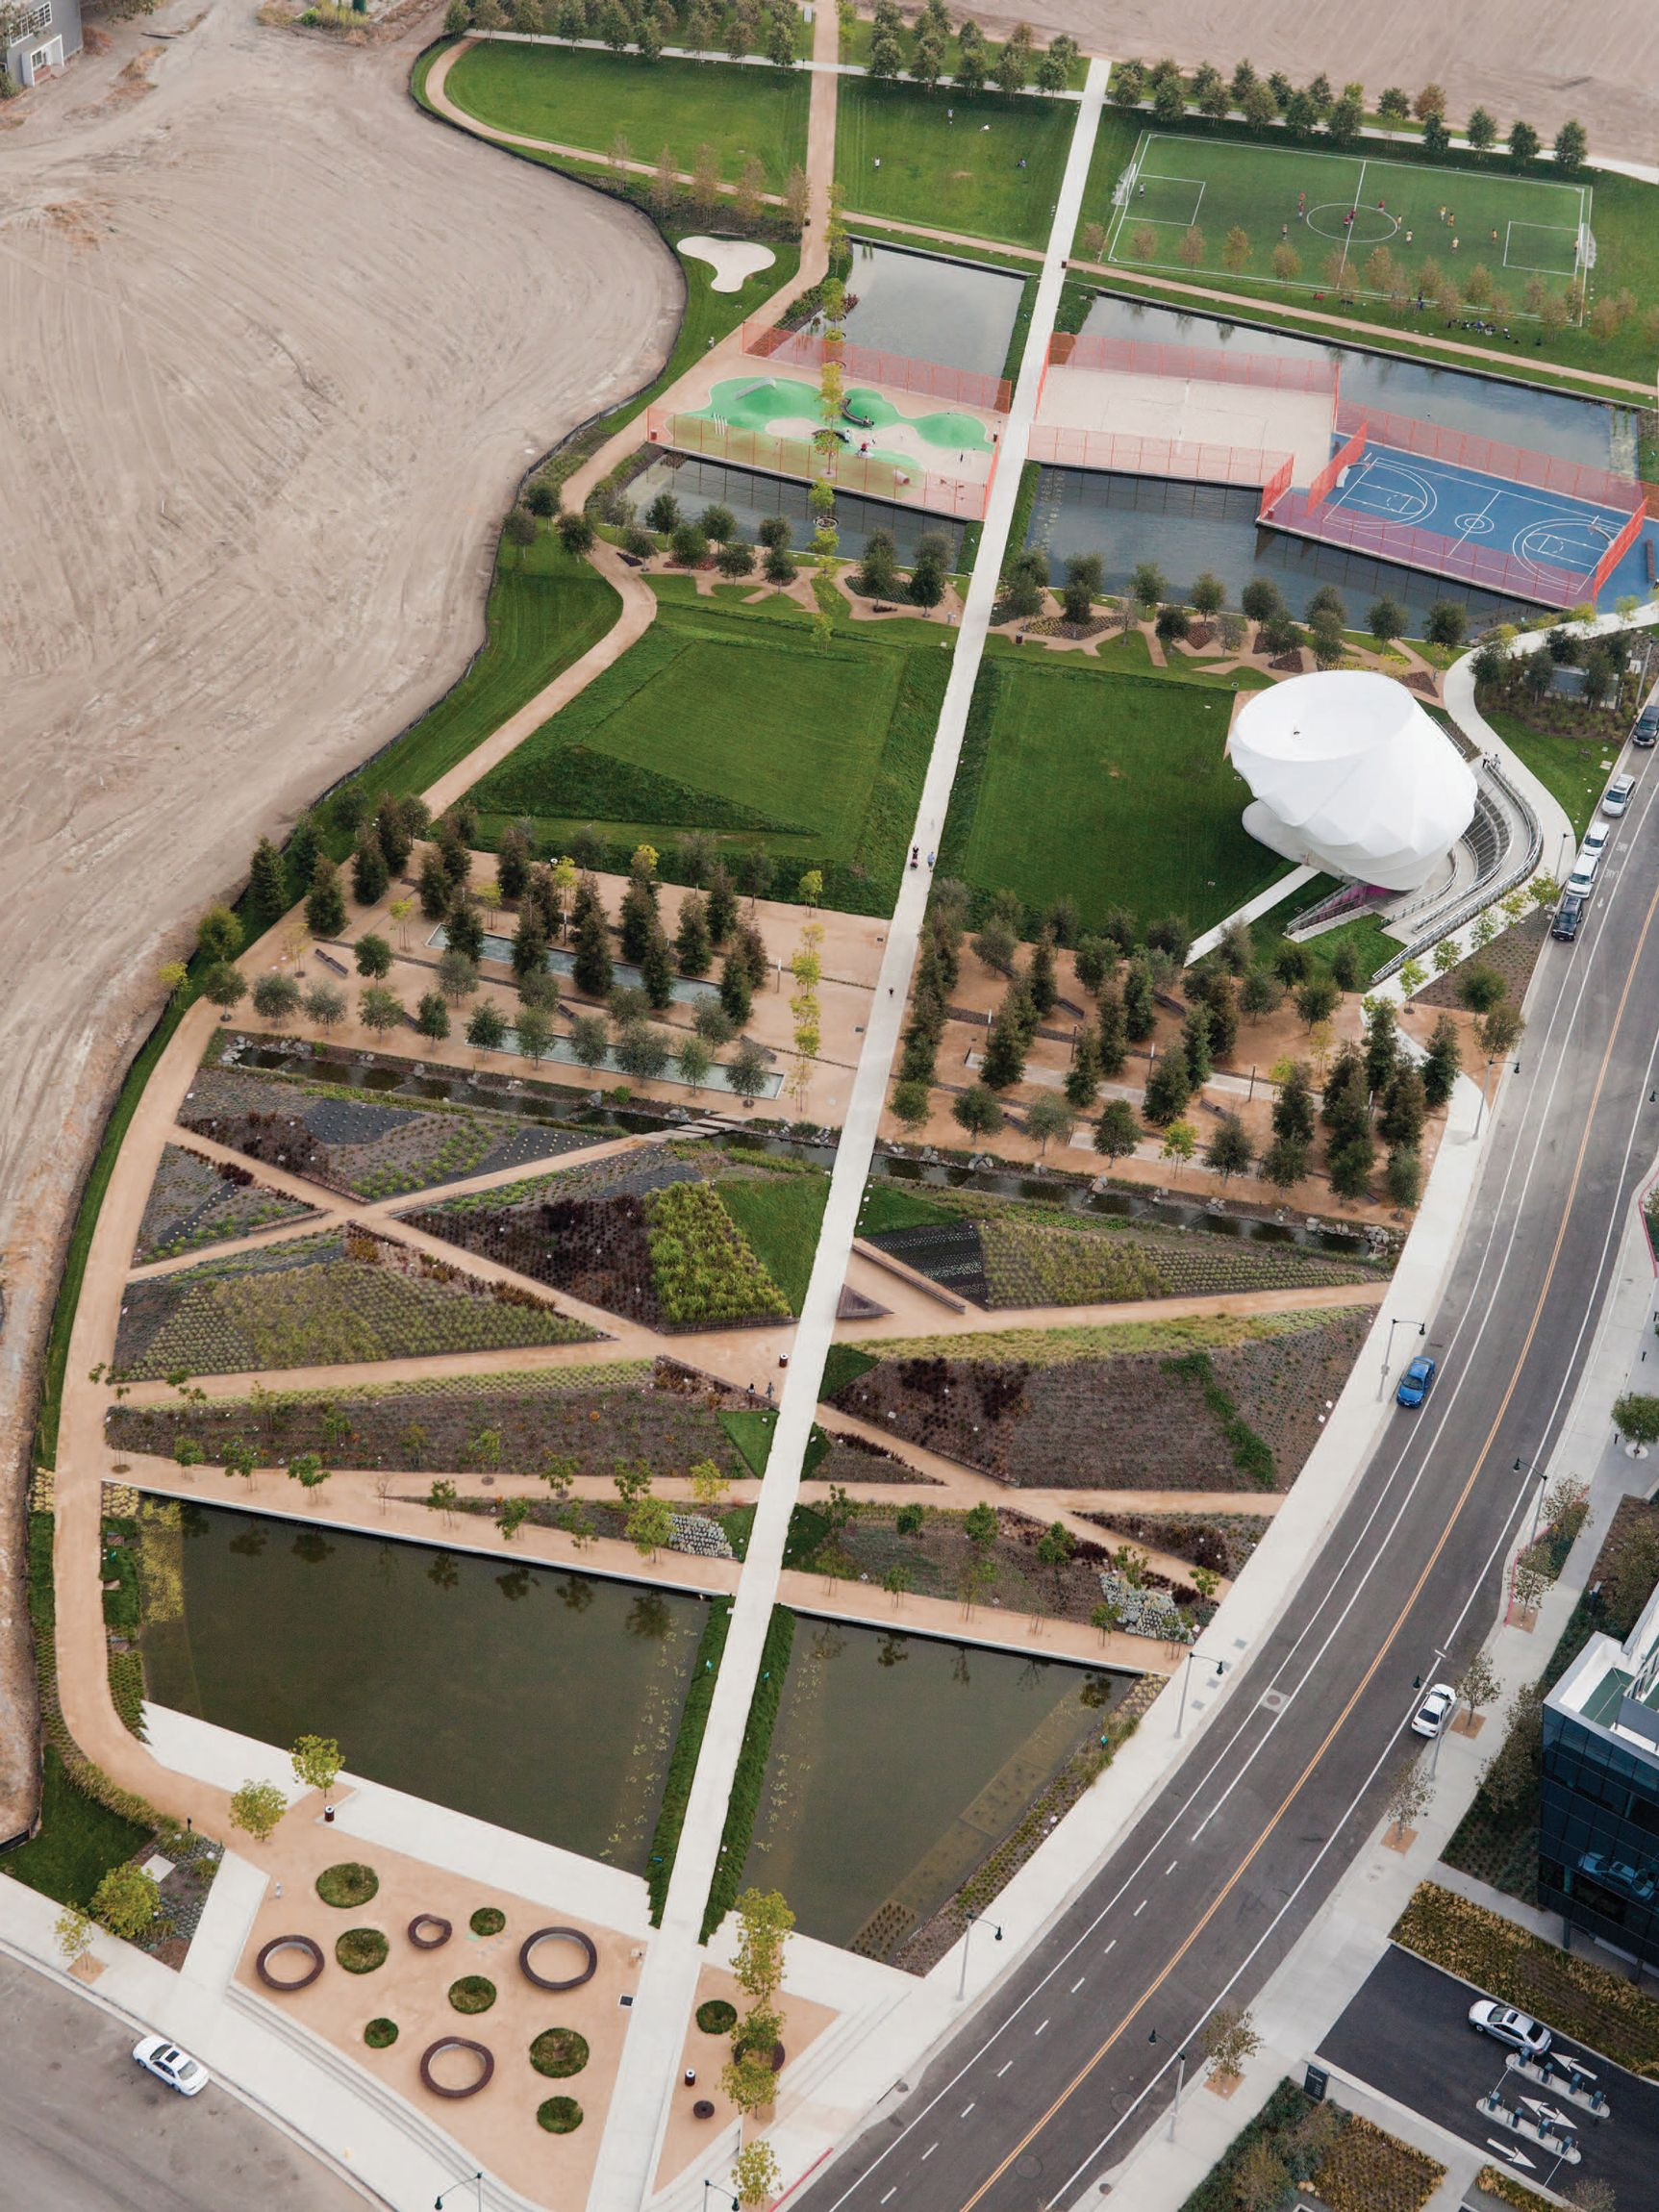 11 Ways To Make Your Office Complex Less Soul Suckingly Awful Landscape Architecture Plan Playa Vista Landscape Projects